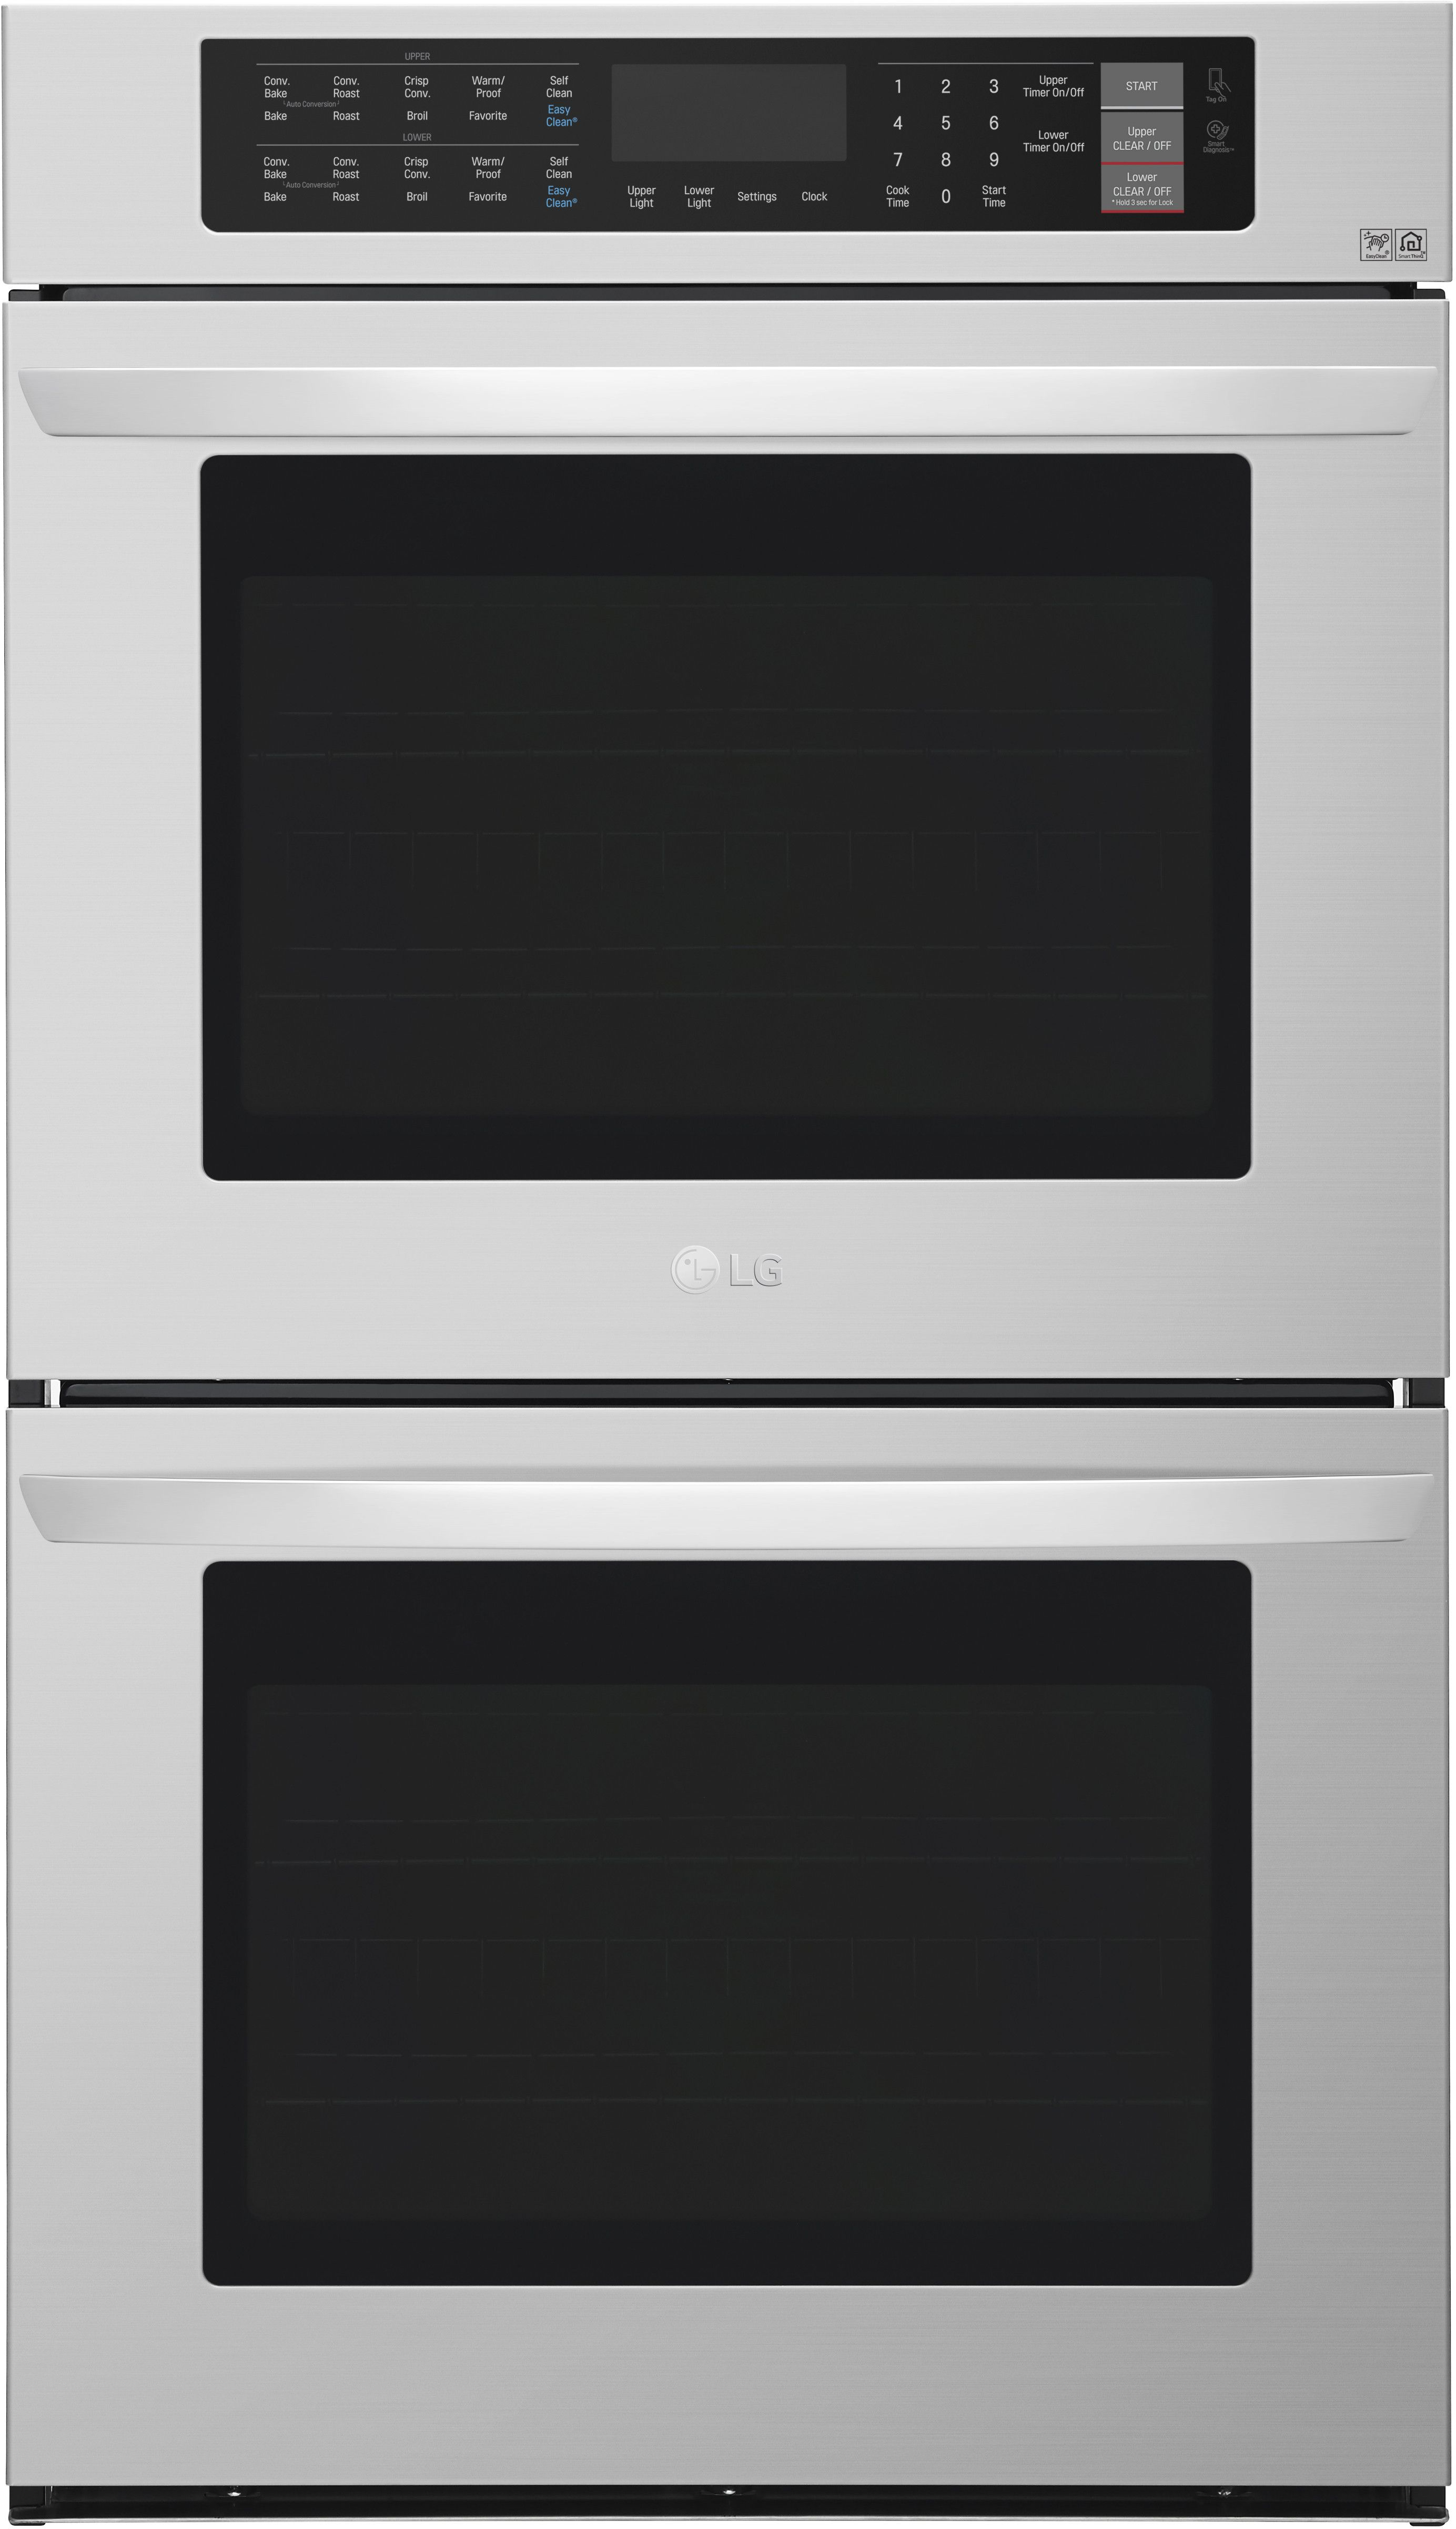 Lg Lwd3063st Wall Oven Convection Wall Oven Double Wall Oven